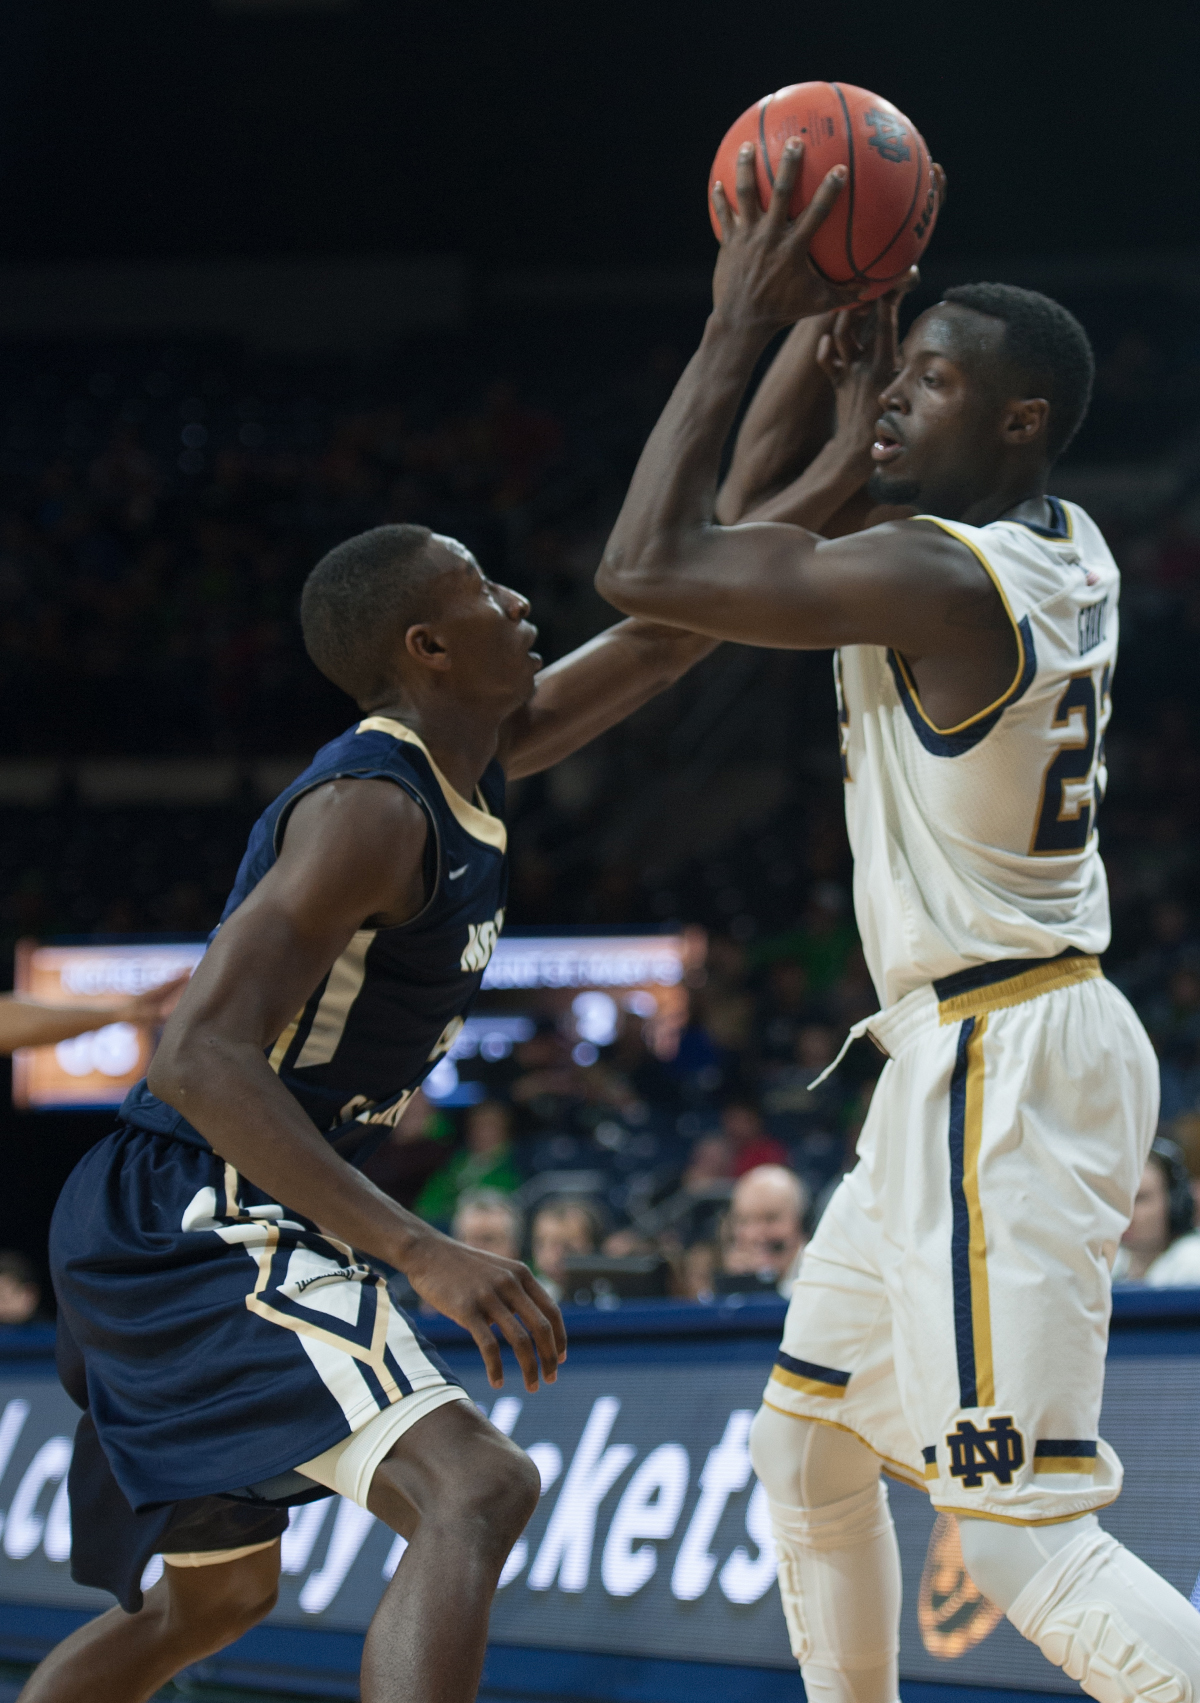 Irish senior guard Jerian Grant protects the ball during Notre Dame's 93-67 victory over Mount St. Mary's on Dec. 9.